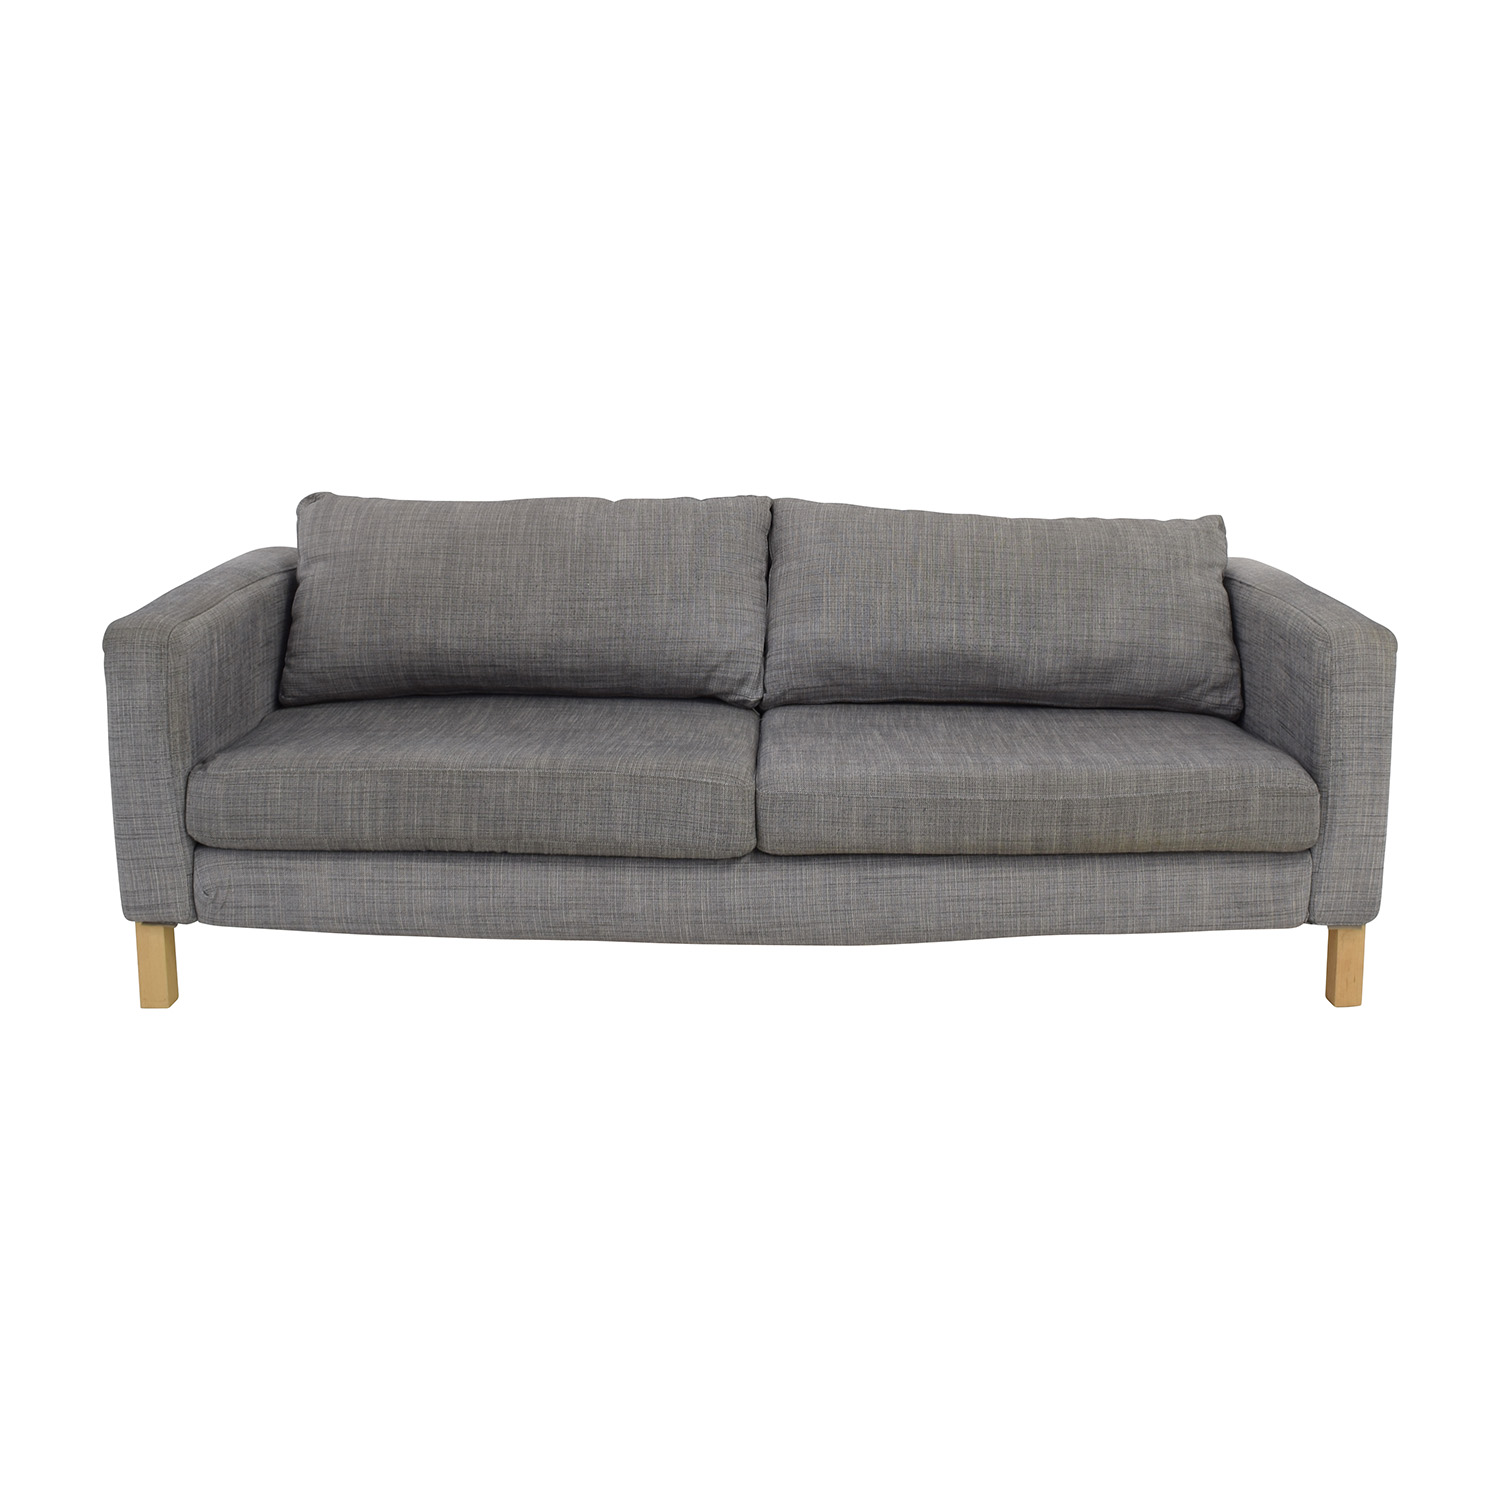 Grey sofas ikea friheten corner sofa bed with storage for Ikea gray sofa